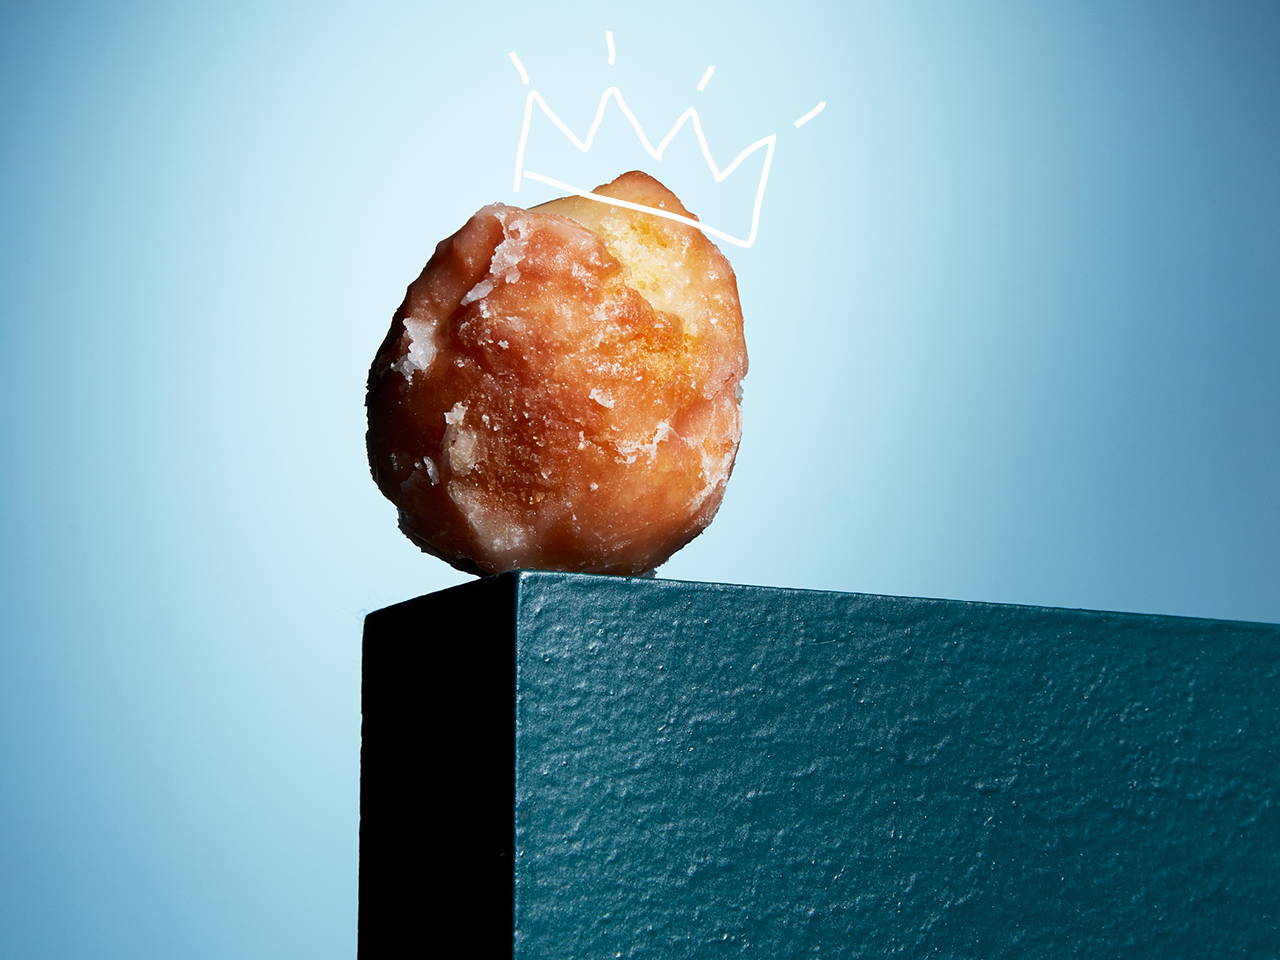 sour cream glazed Timbit on a light blue background